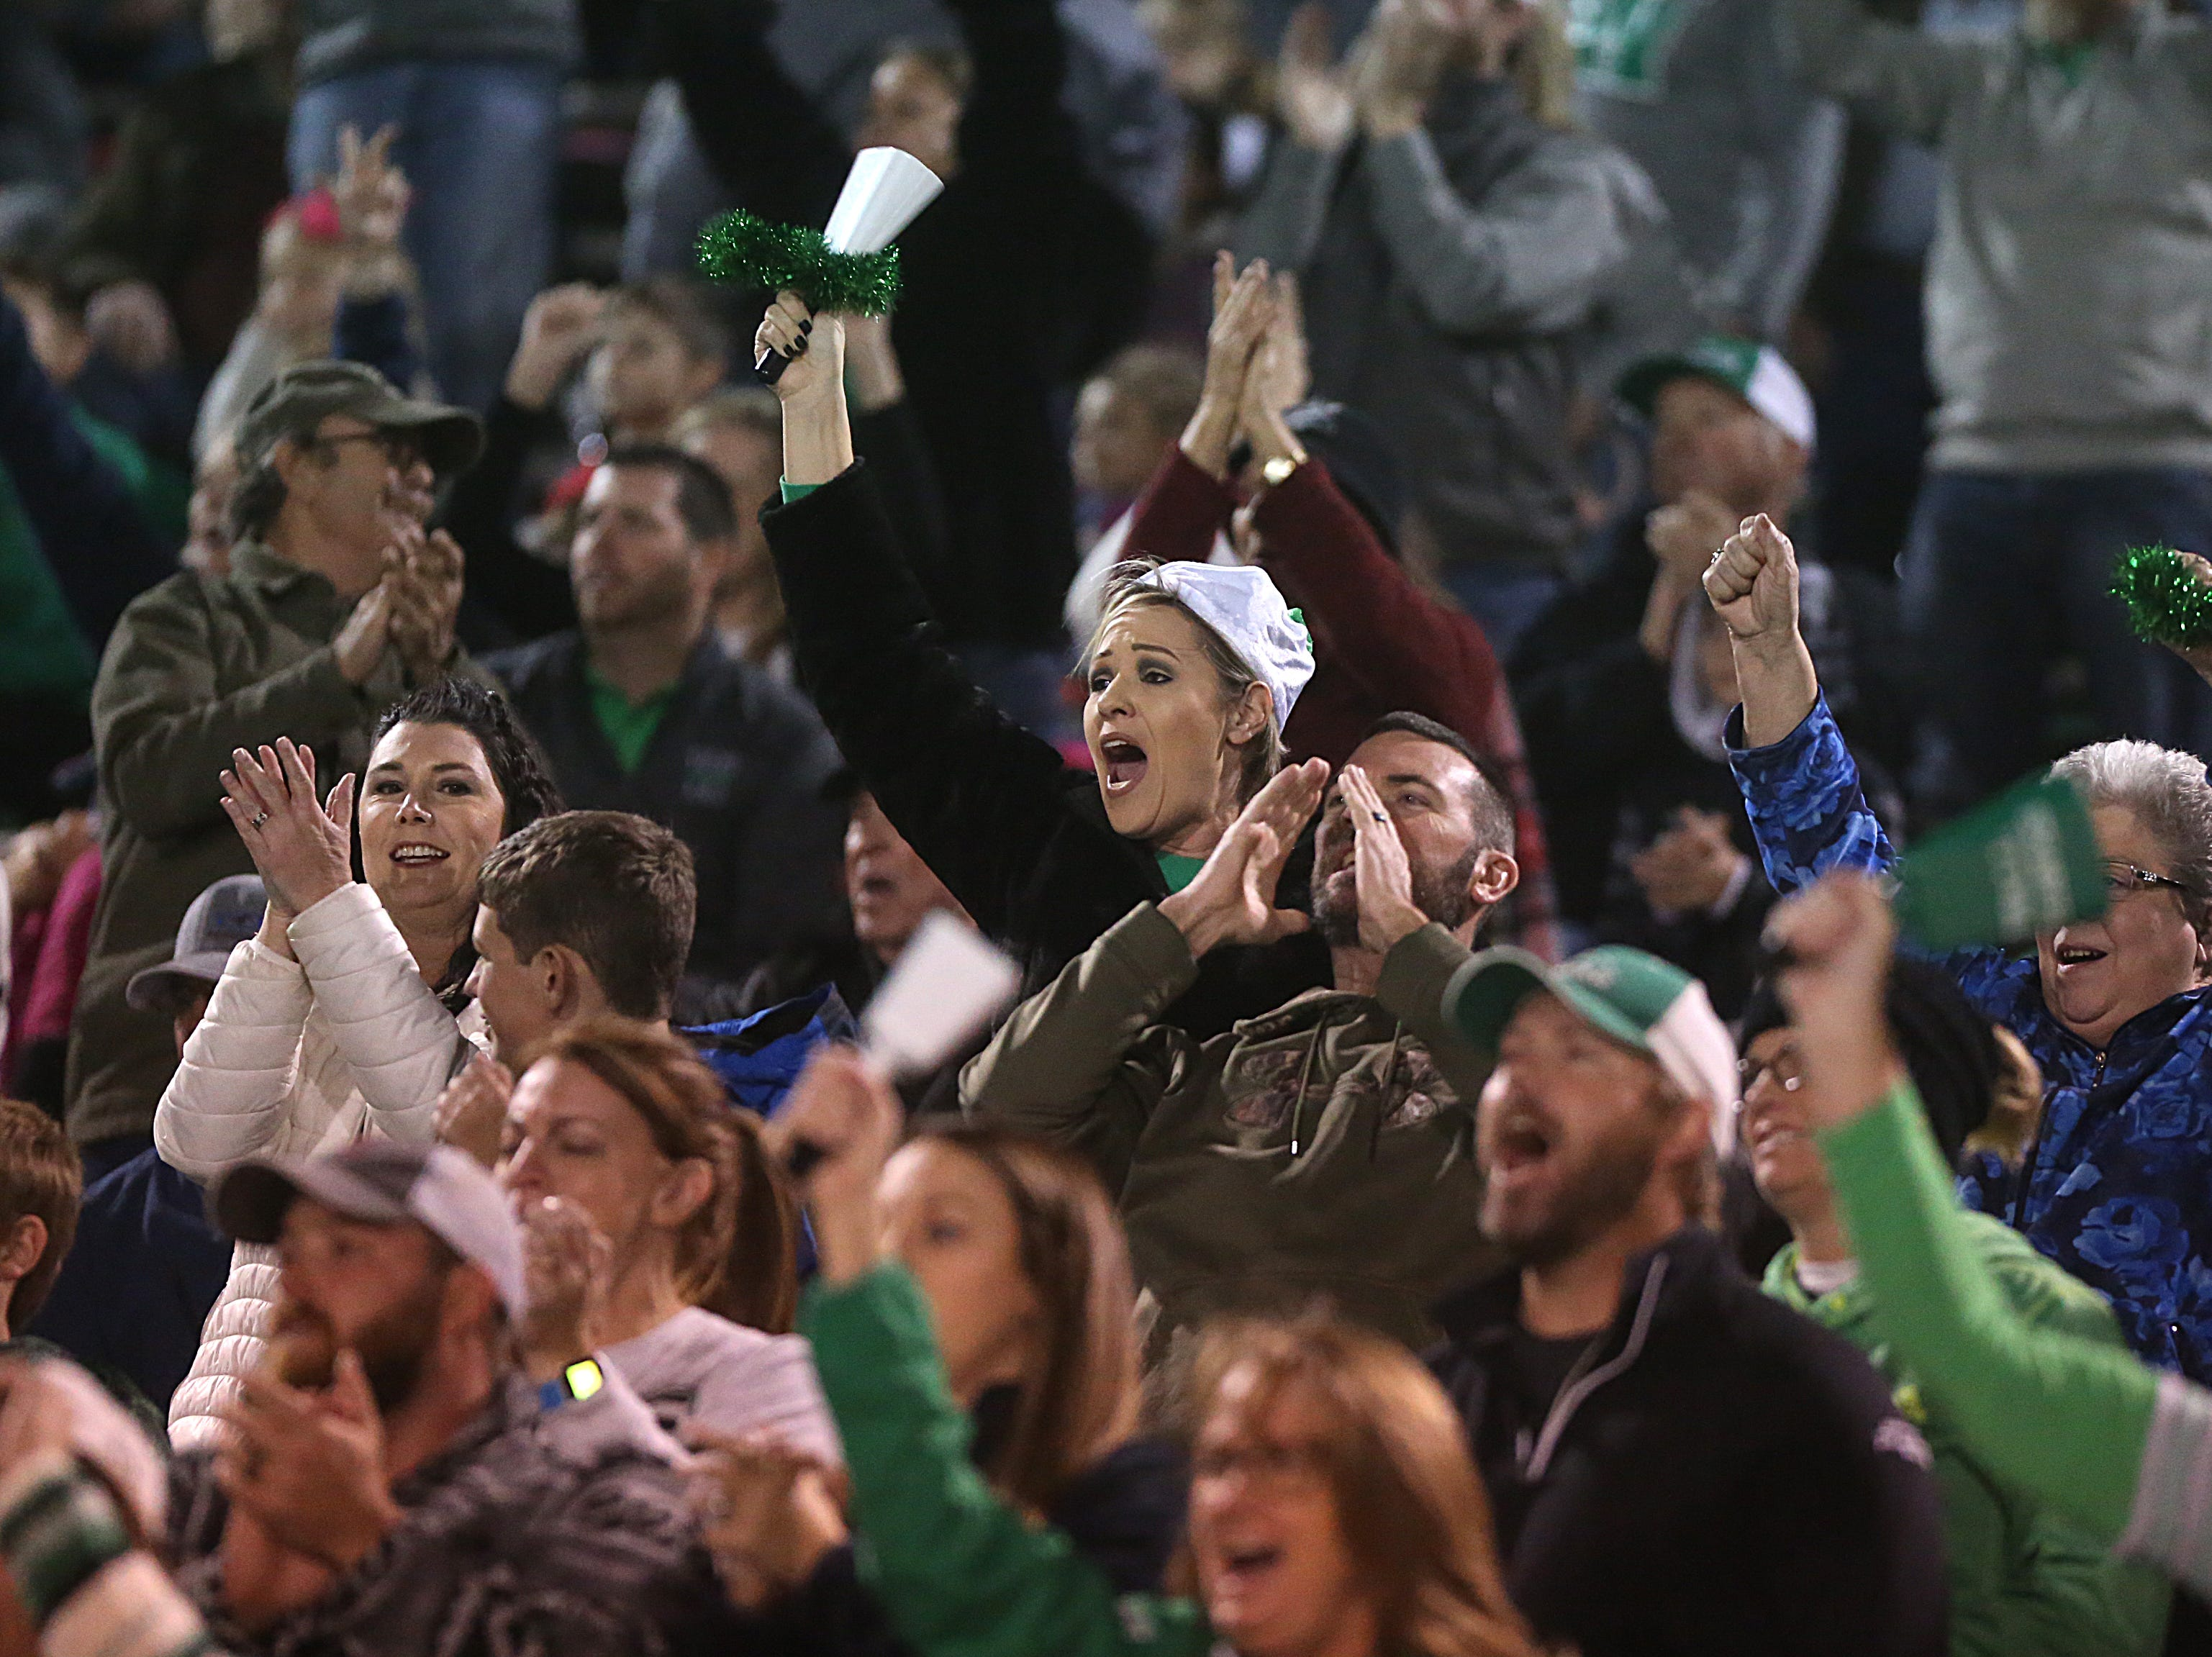 Wall fans cheer for their team Friday, Nov. 30, 2018, during their game against the Brock Eagles at Shotwell Stadium in Abilene. Wall lost 13 to 35.